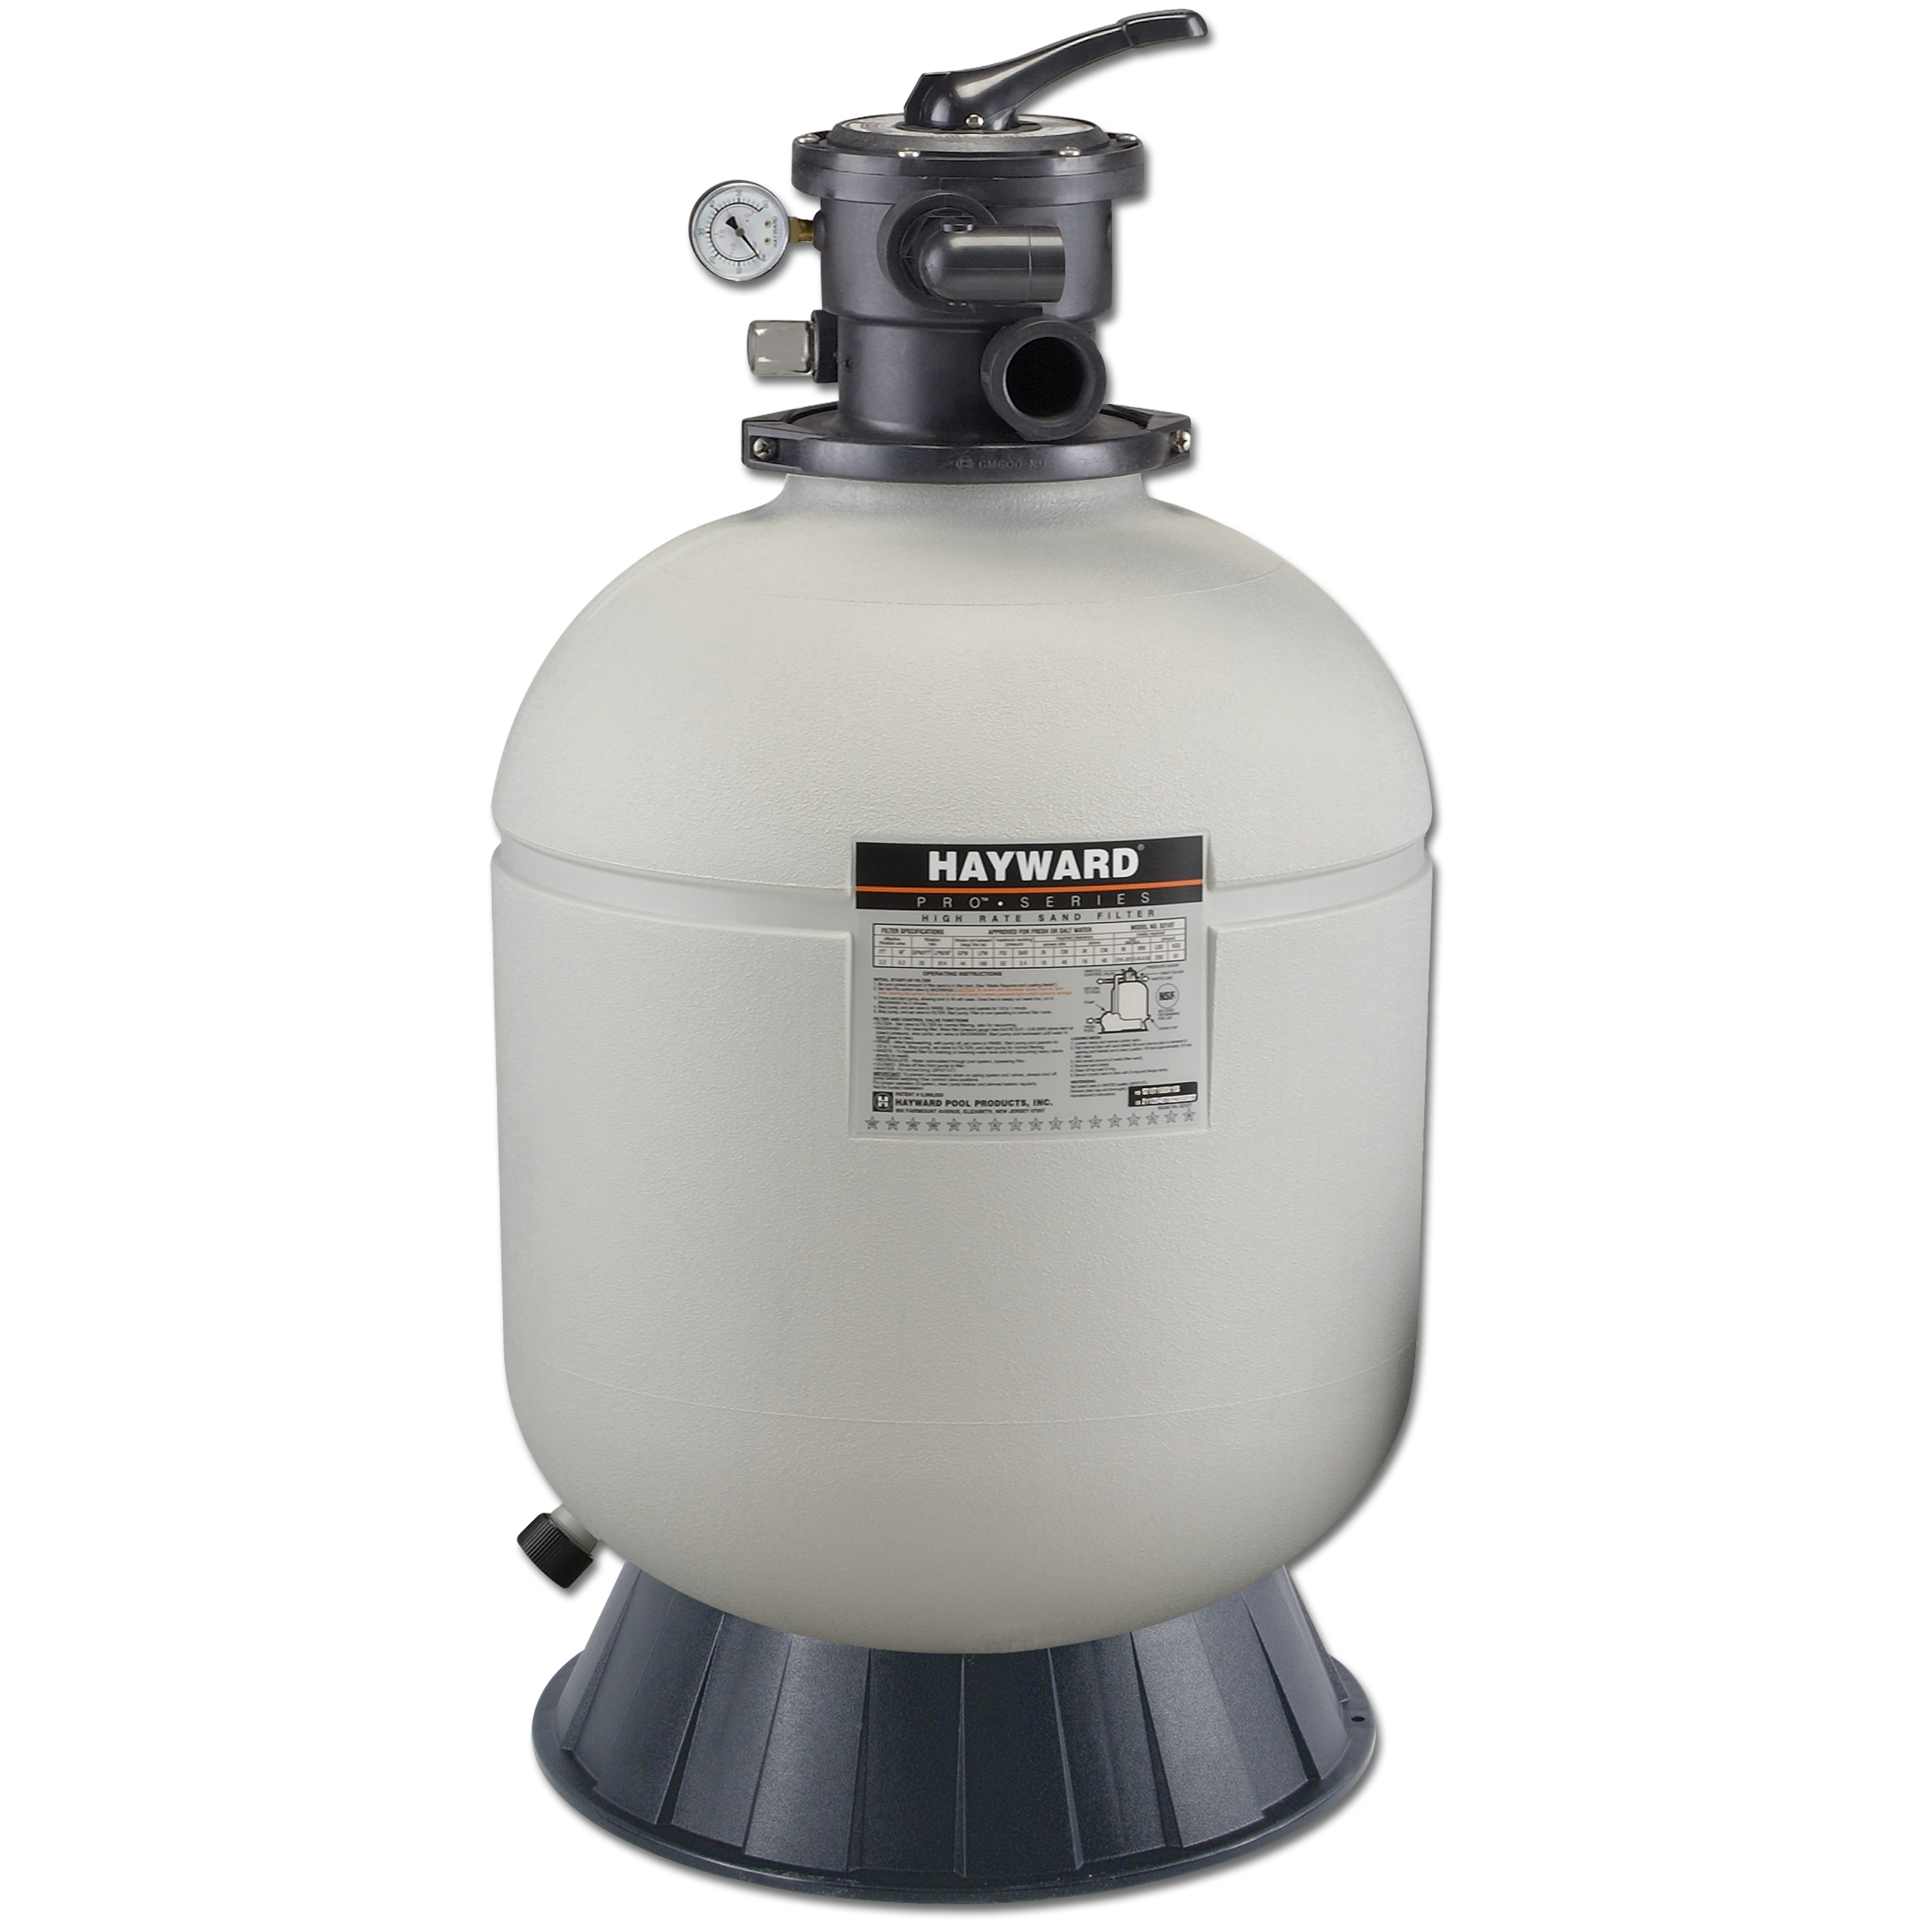 Hayward Pro Series 16 Inch Above Ground Pool Sand Filter